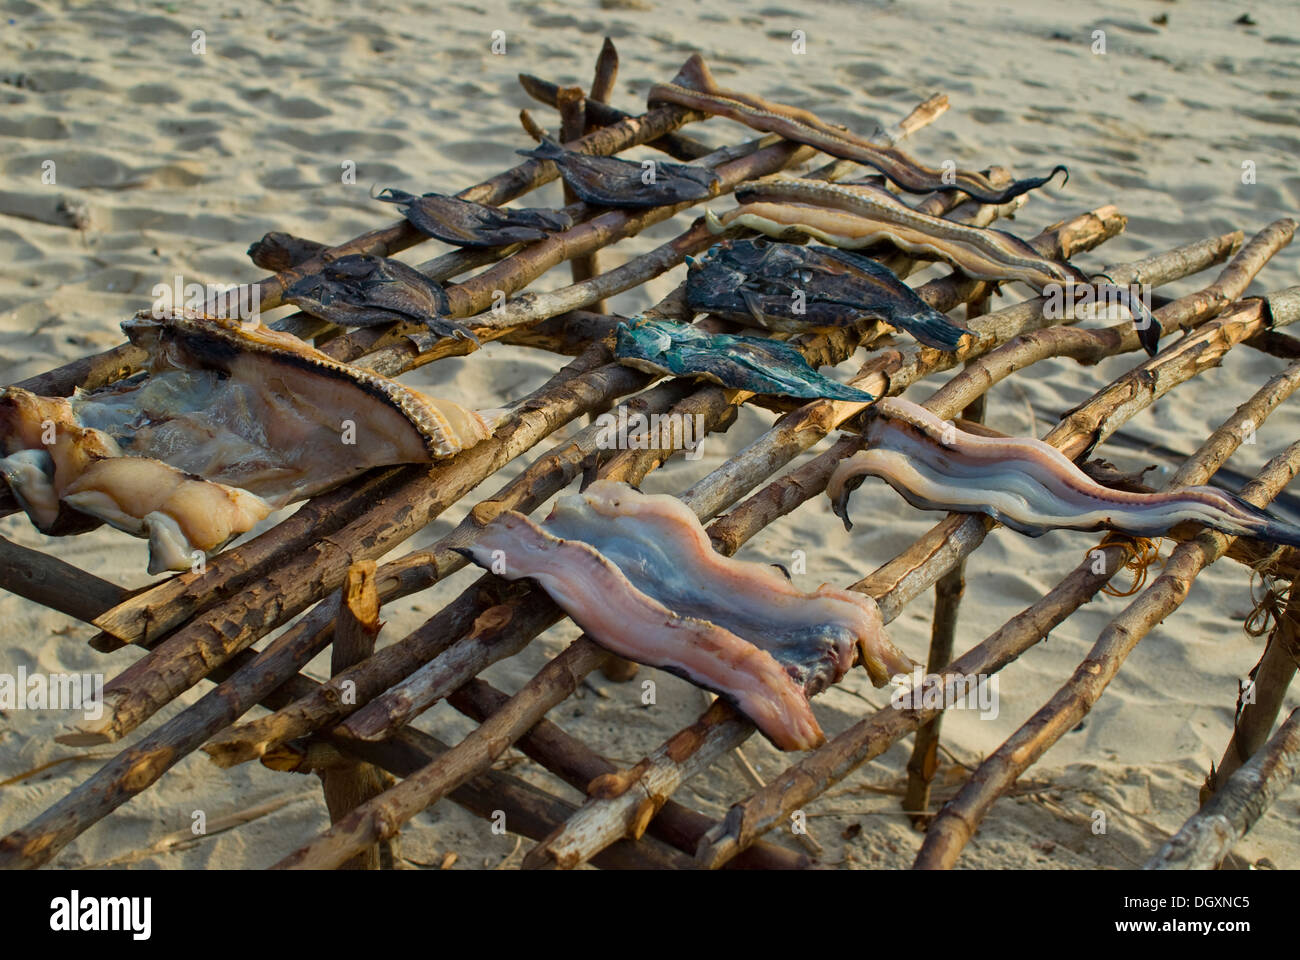 Catch of the day, cleaned and drying on the beach - Stock Image